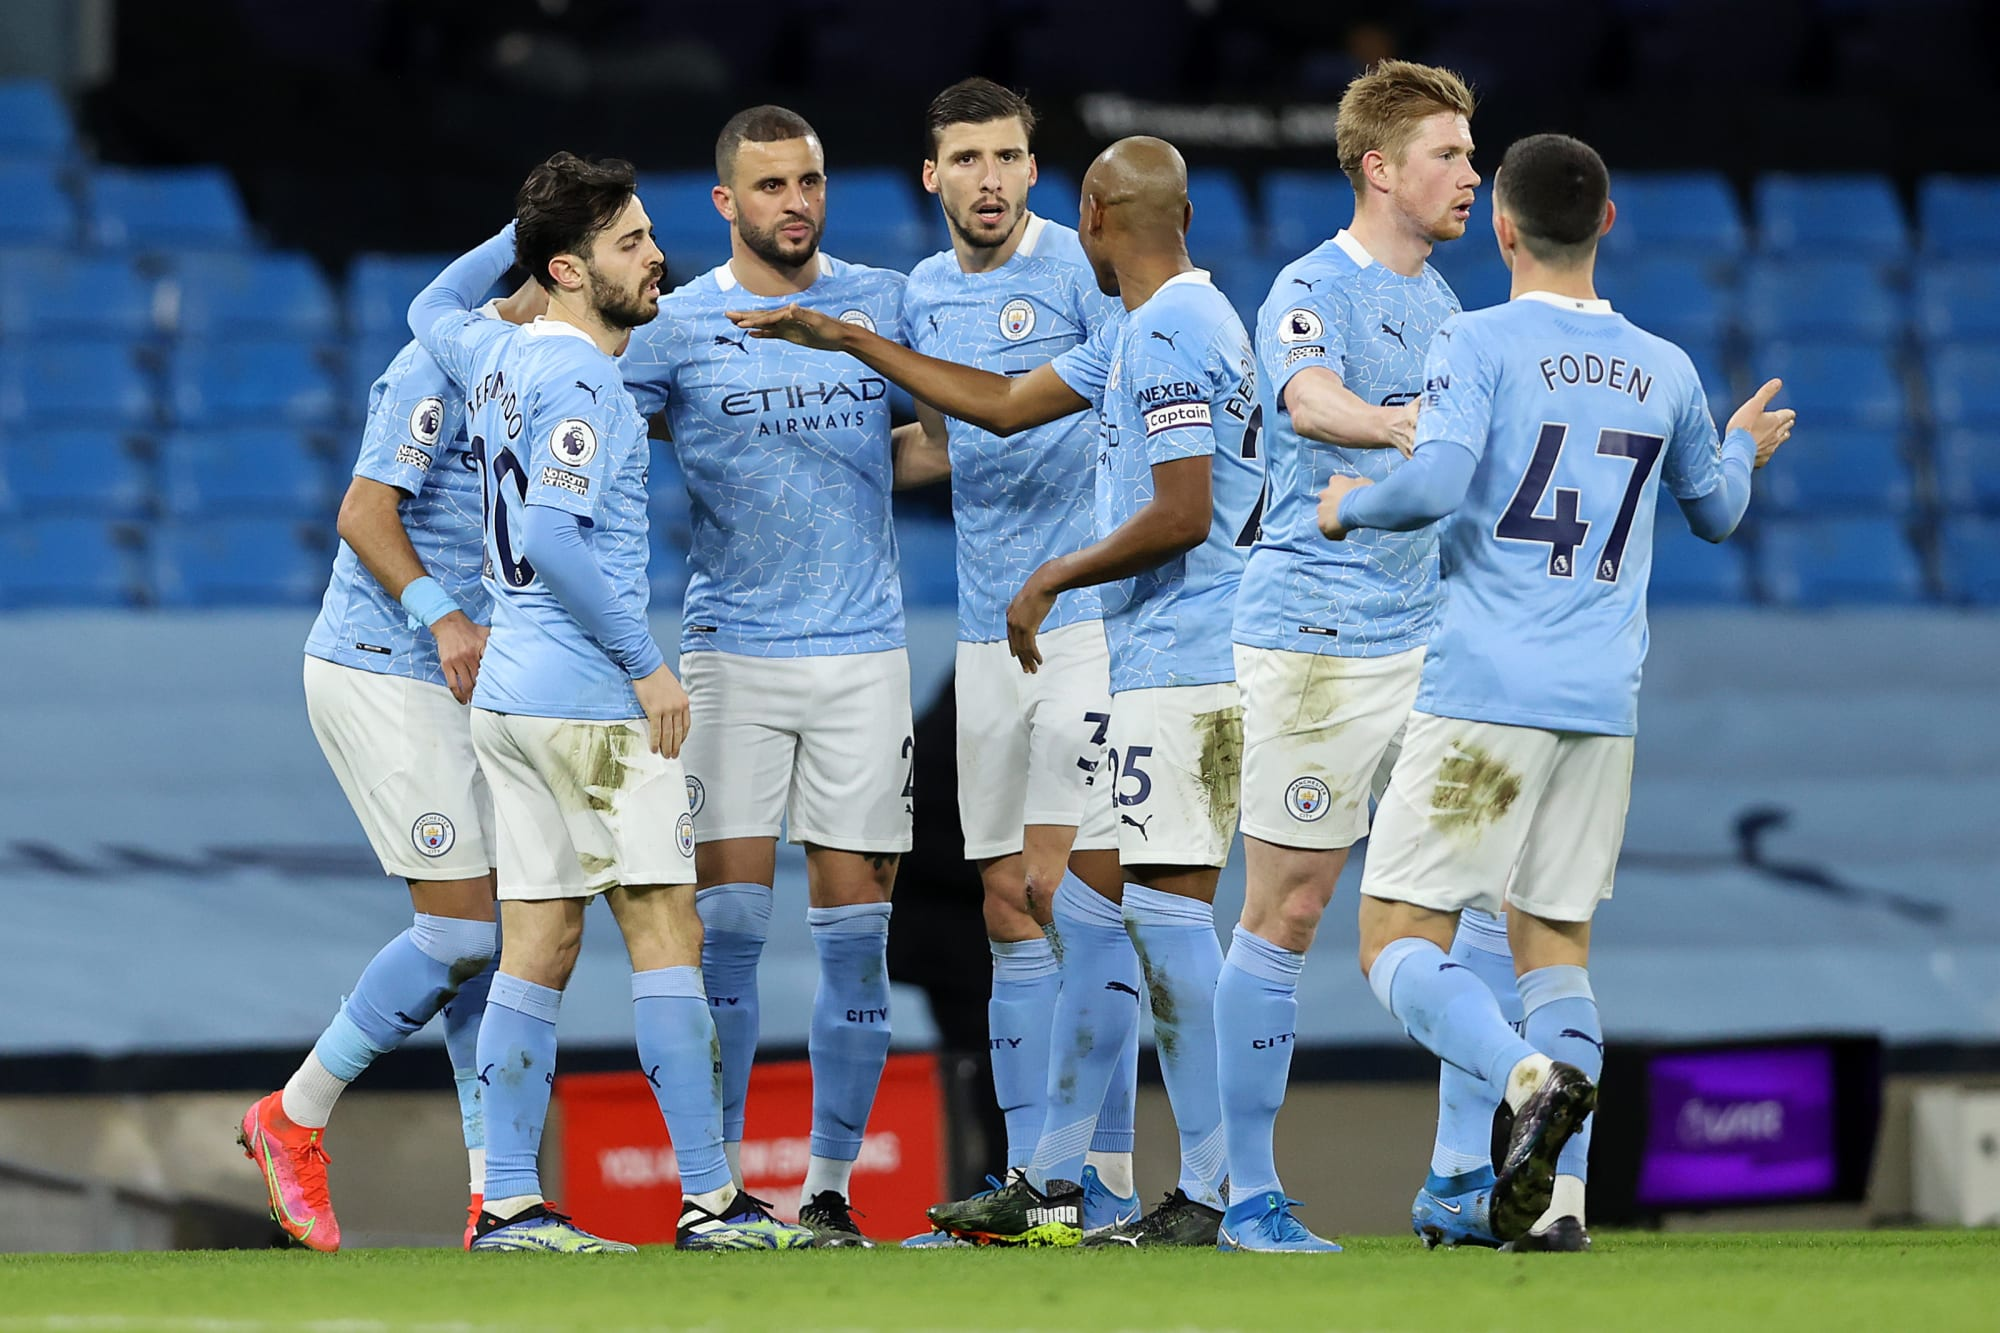 Manchester City could yet choose a new skipper before the start of the season